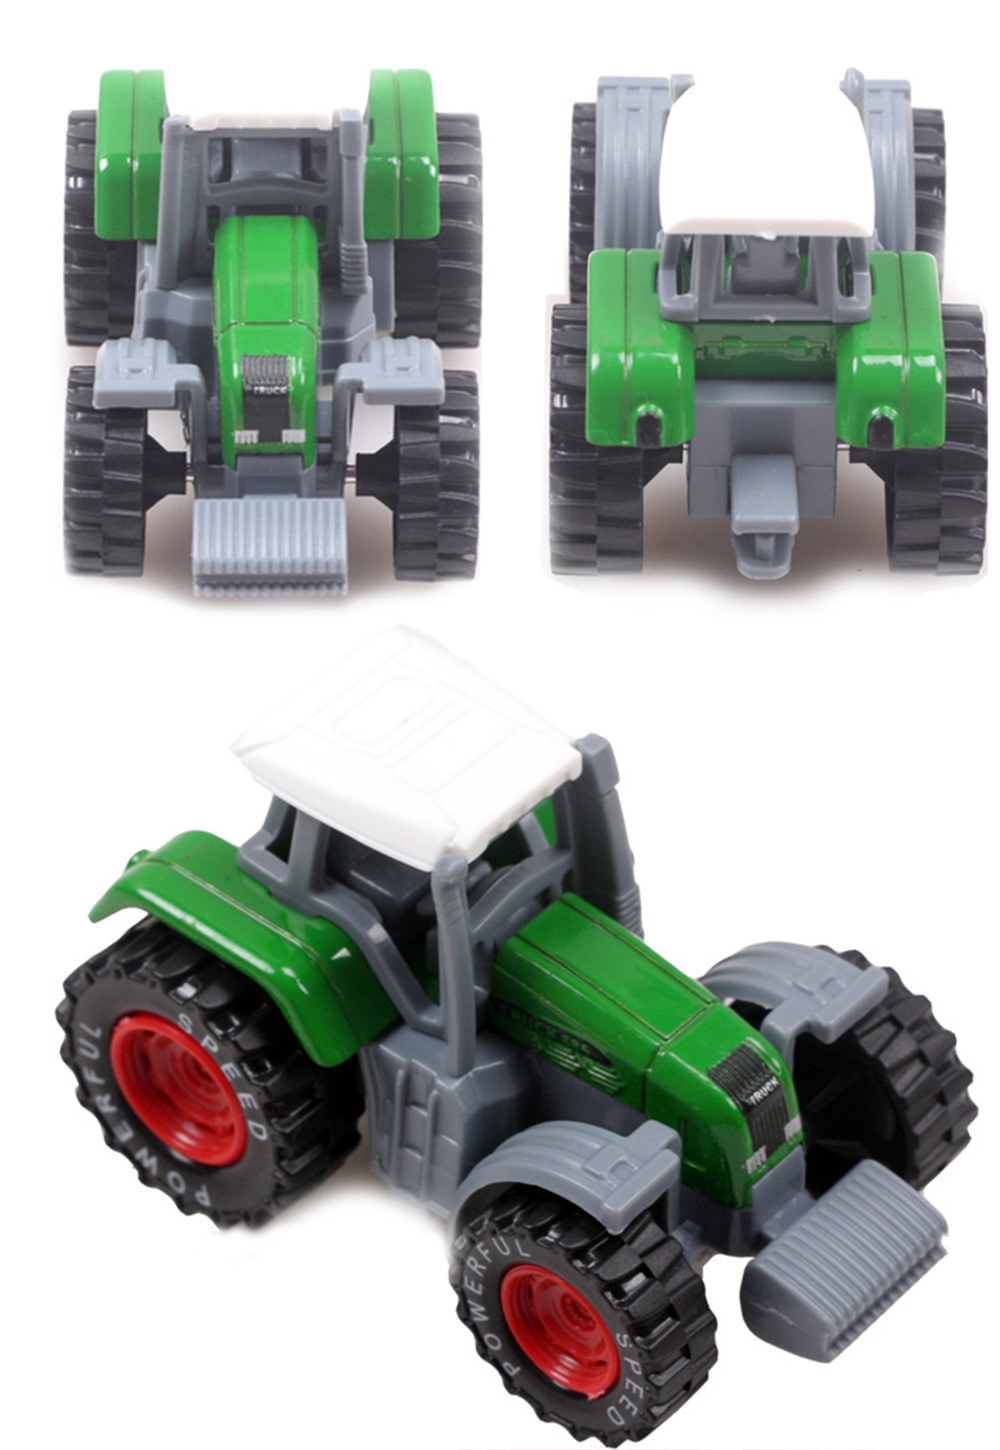 1:64 3 color 3pcs/lot farmer tractor model metal plastic toy car gift for child adult with tracking information